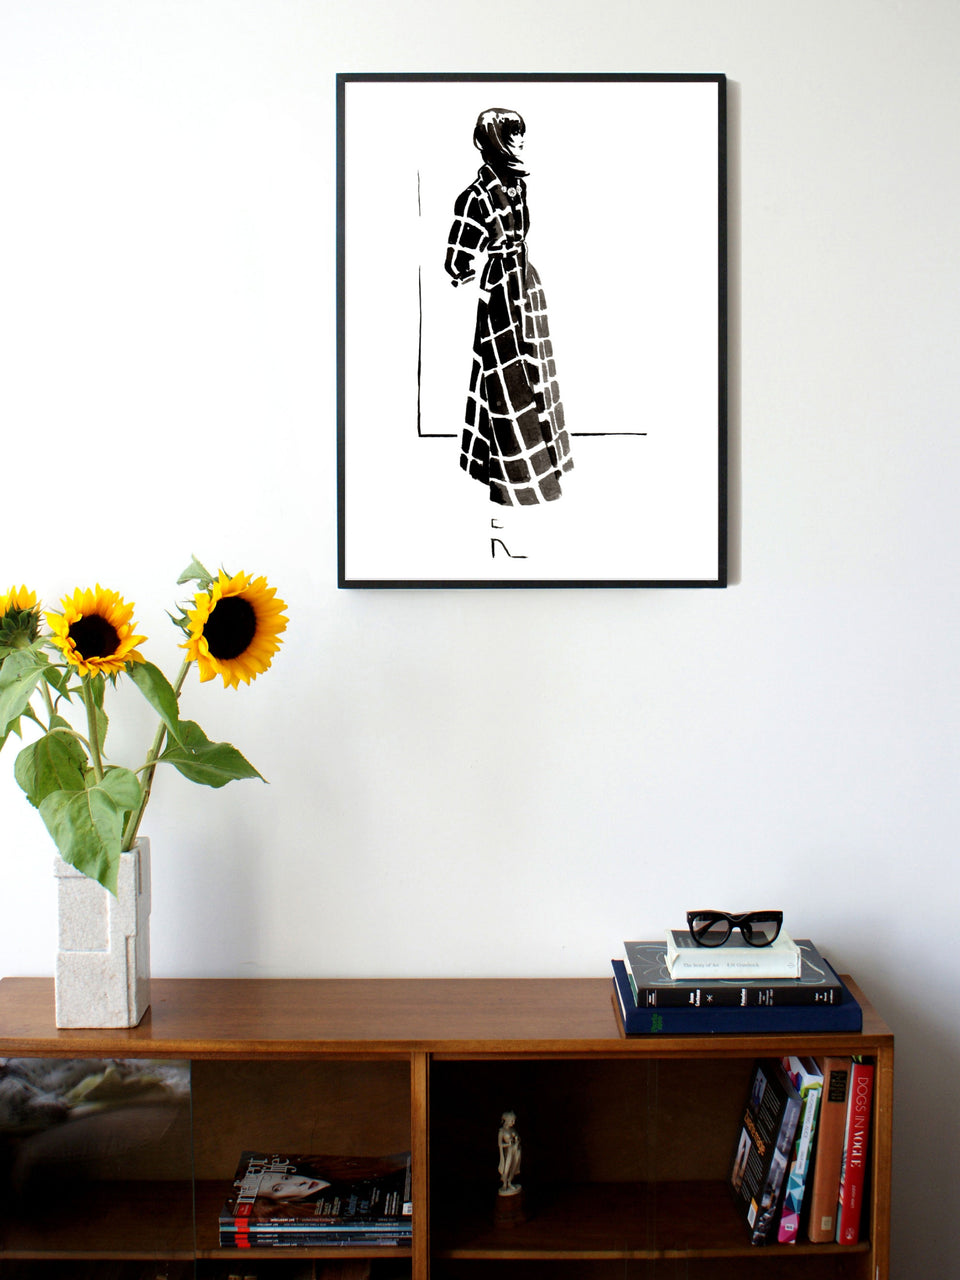 Fashion illustration print of Lanvin '15 by Sjoukje Bierma - woman in check coat - 60 x 80 cm framed